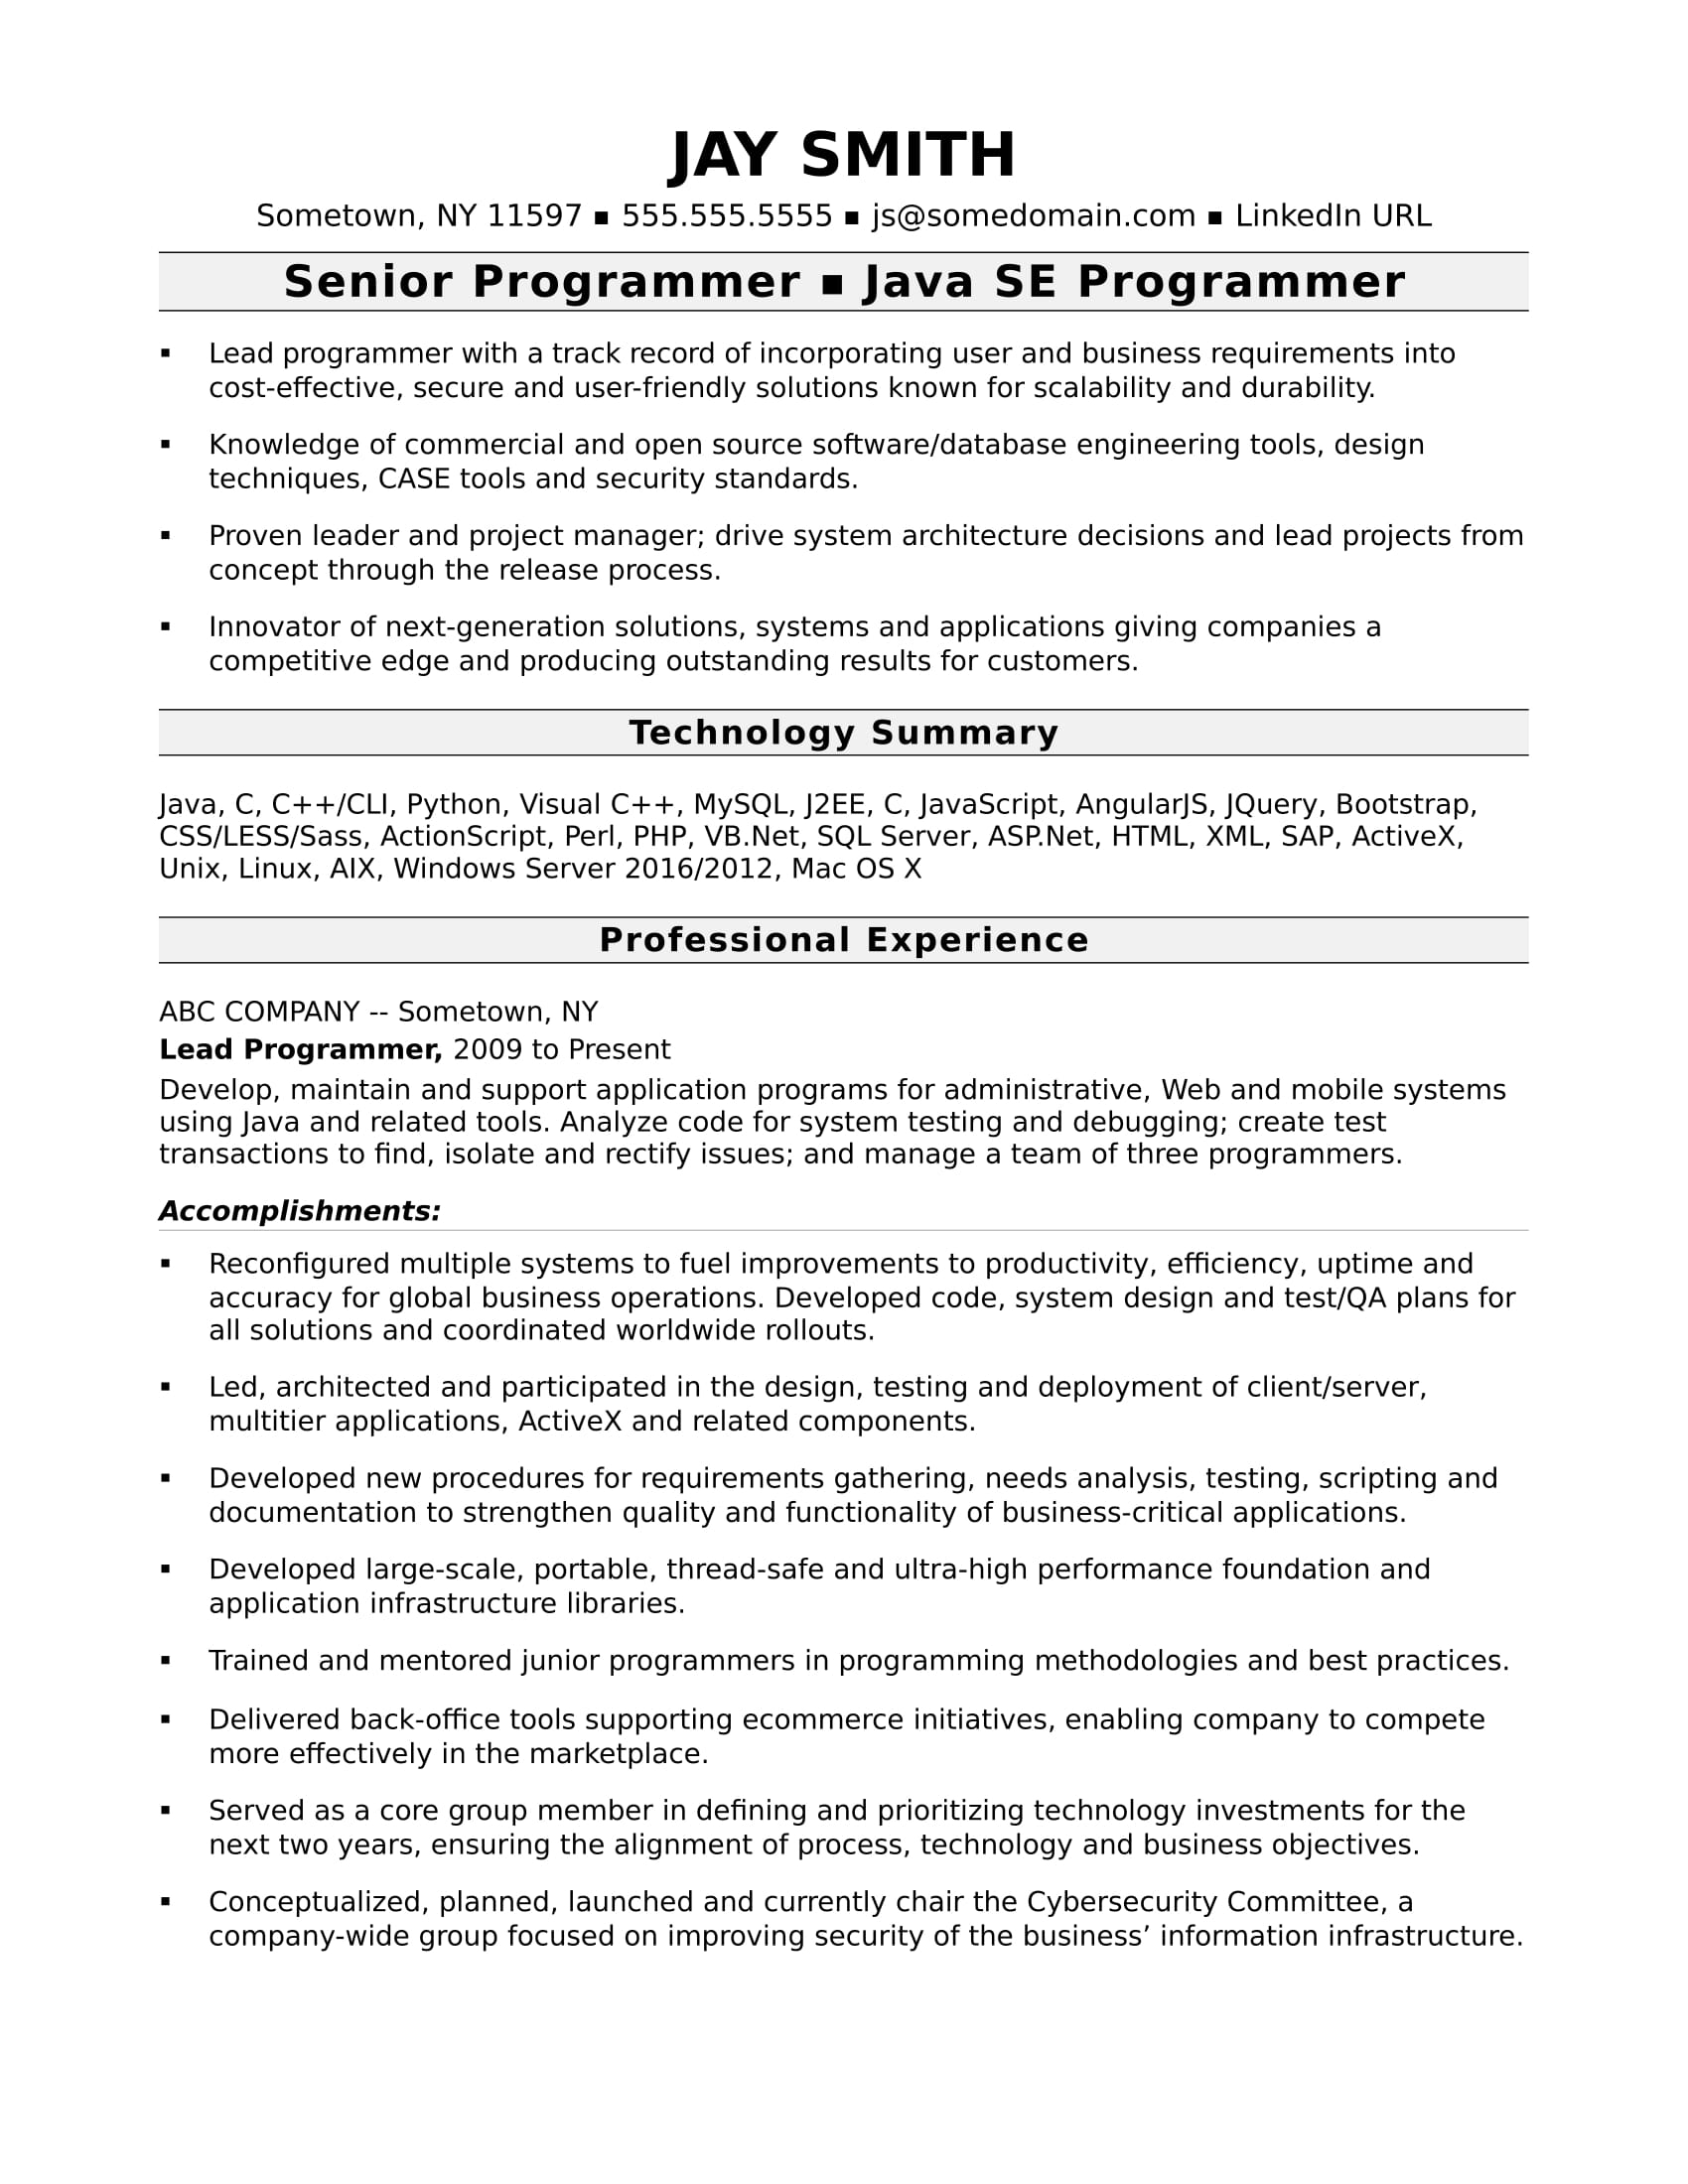 Sample Resume for an Experienced Computer Programmer | Monster com